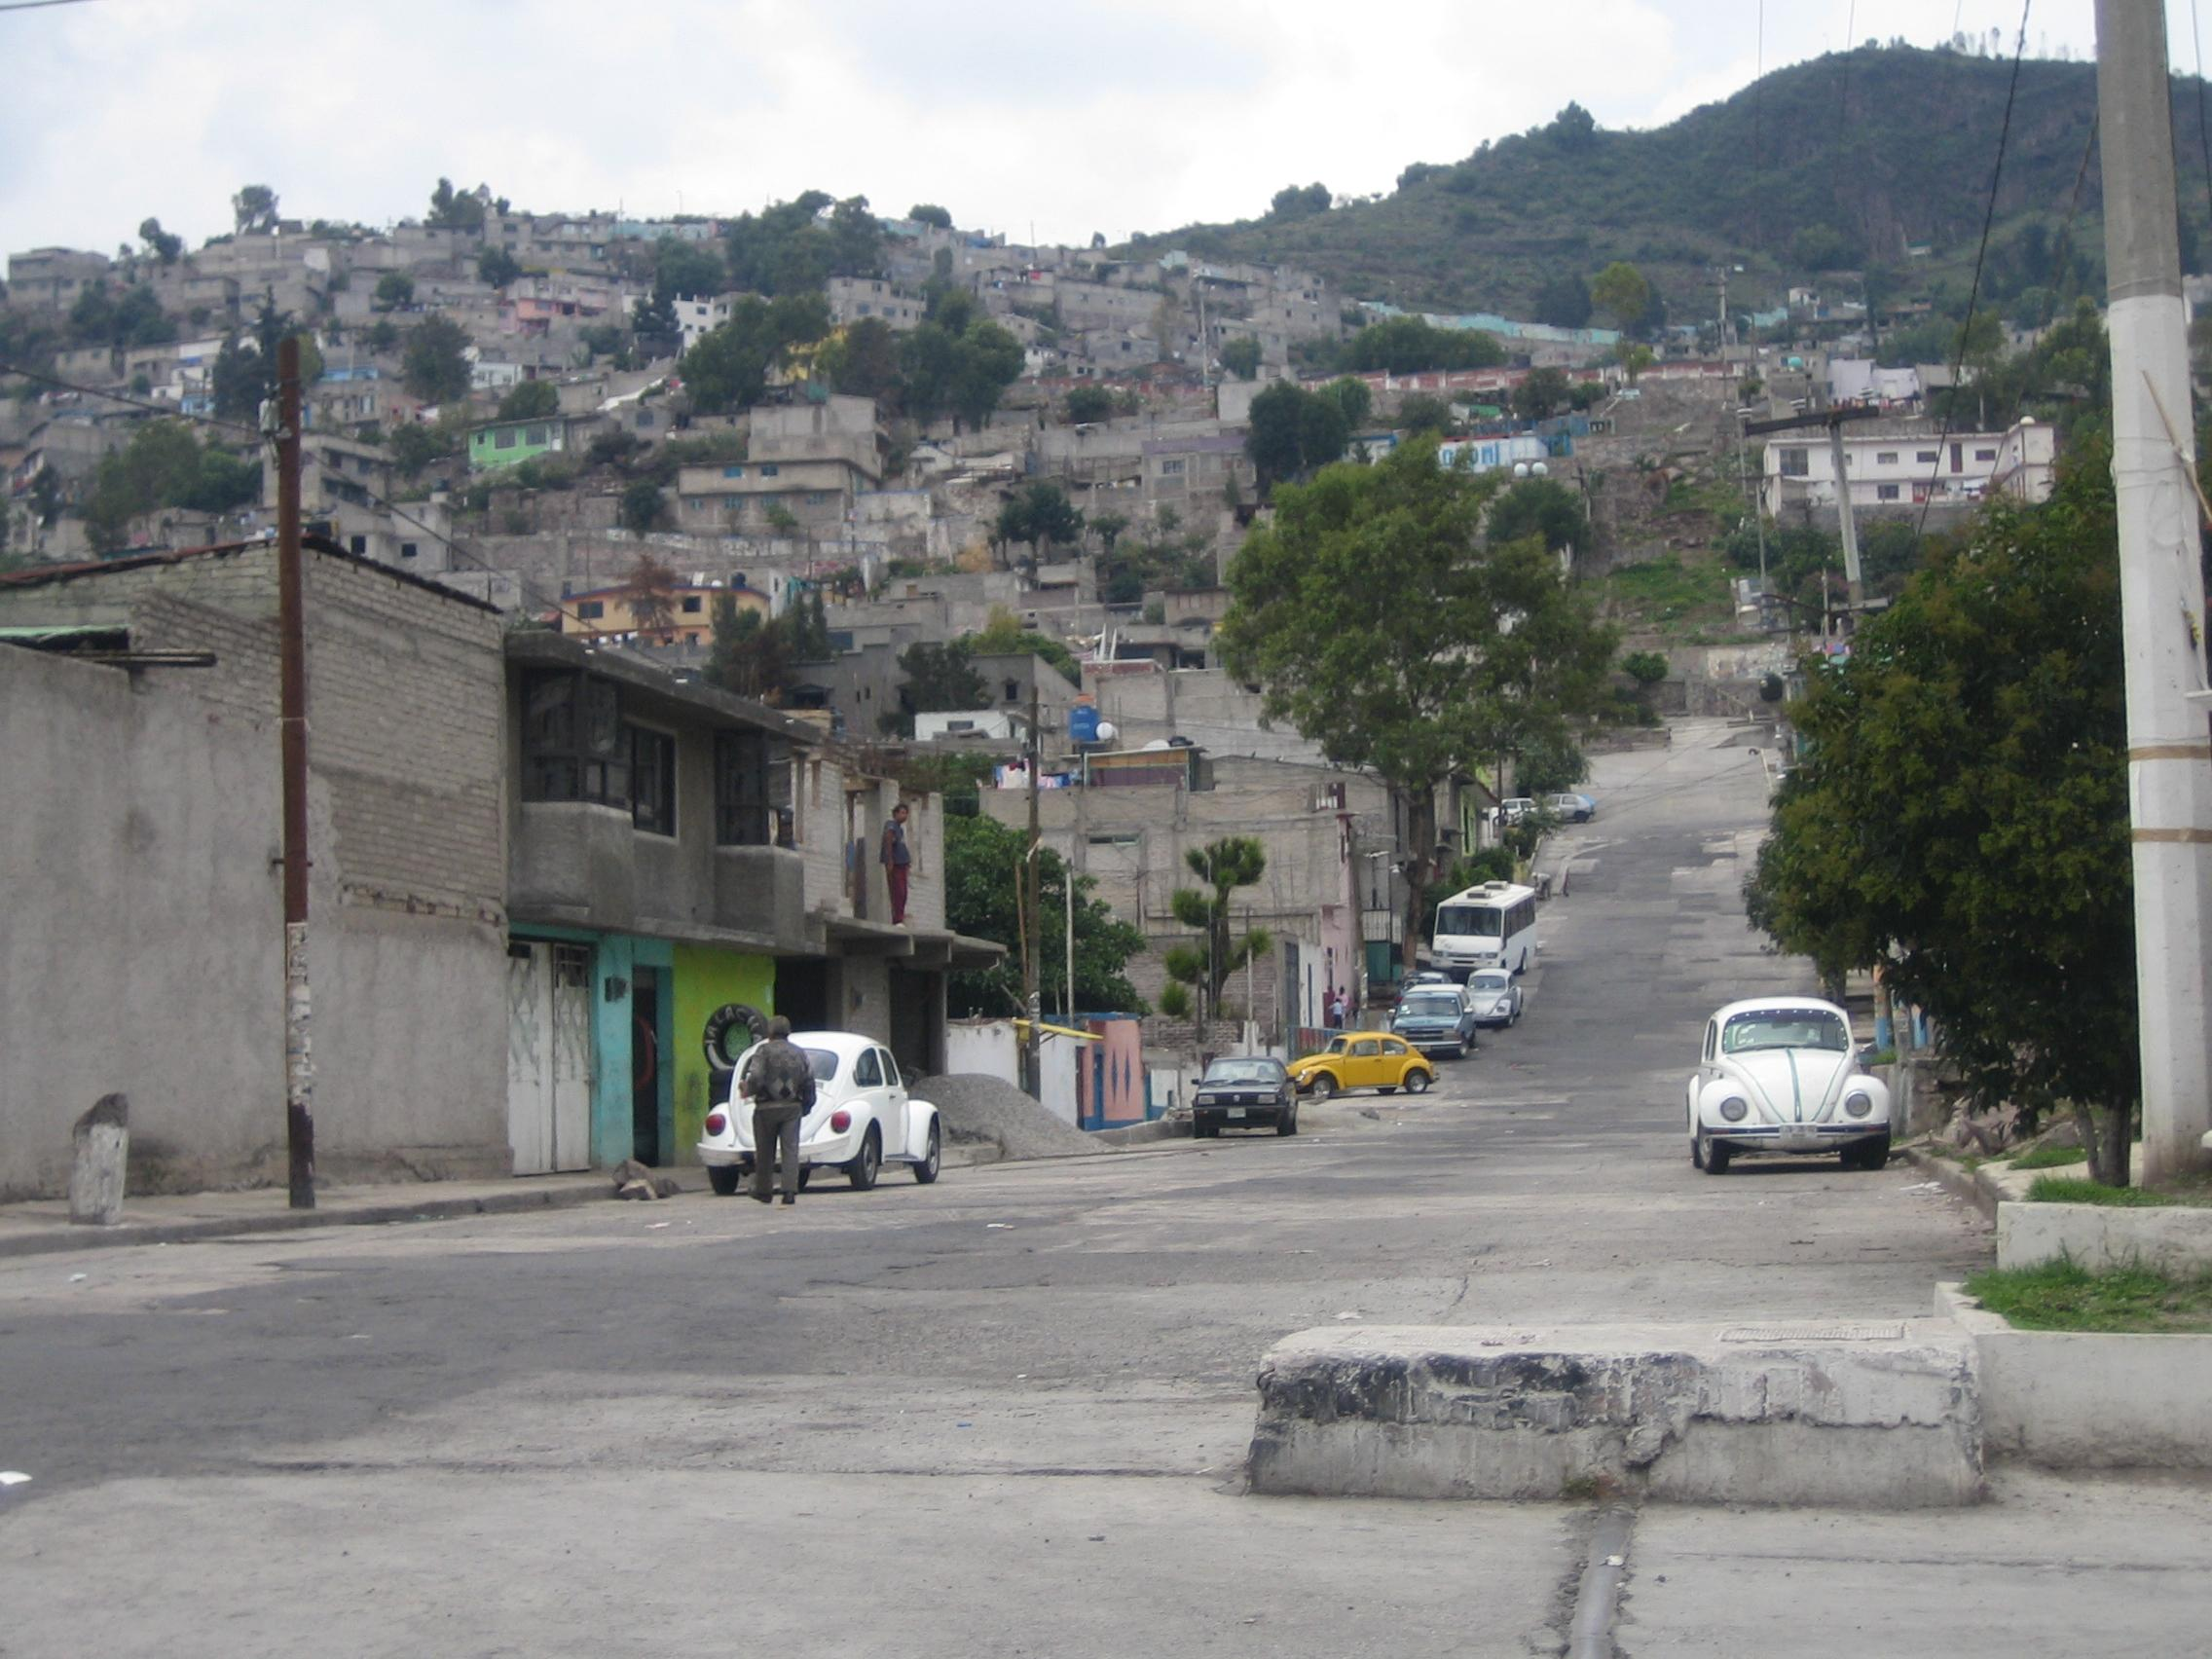 Some town in Mexico